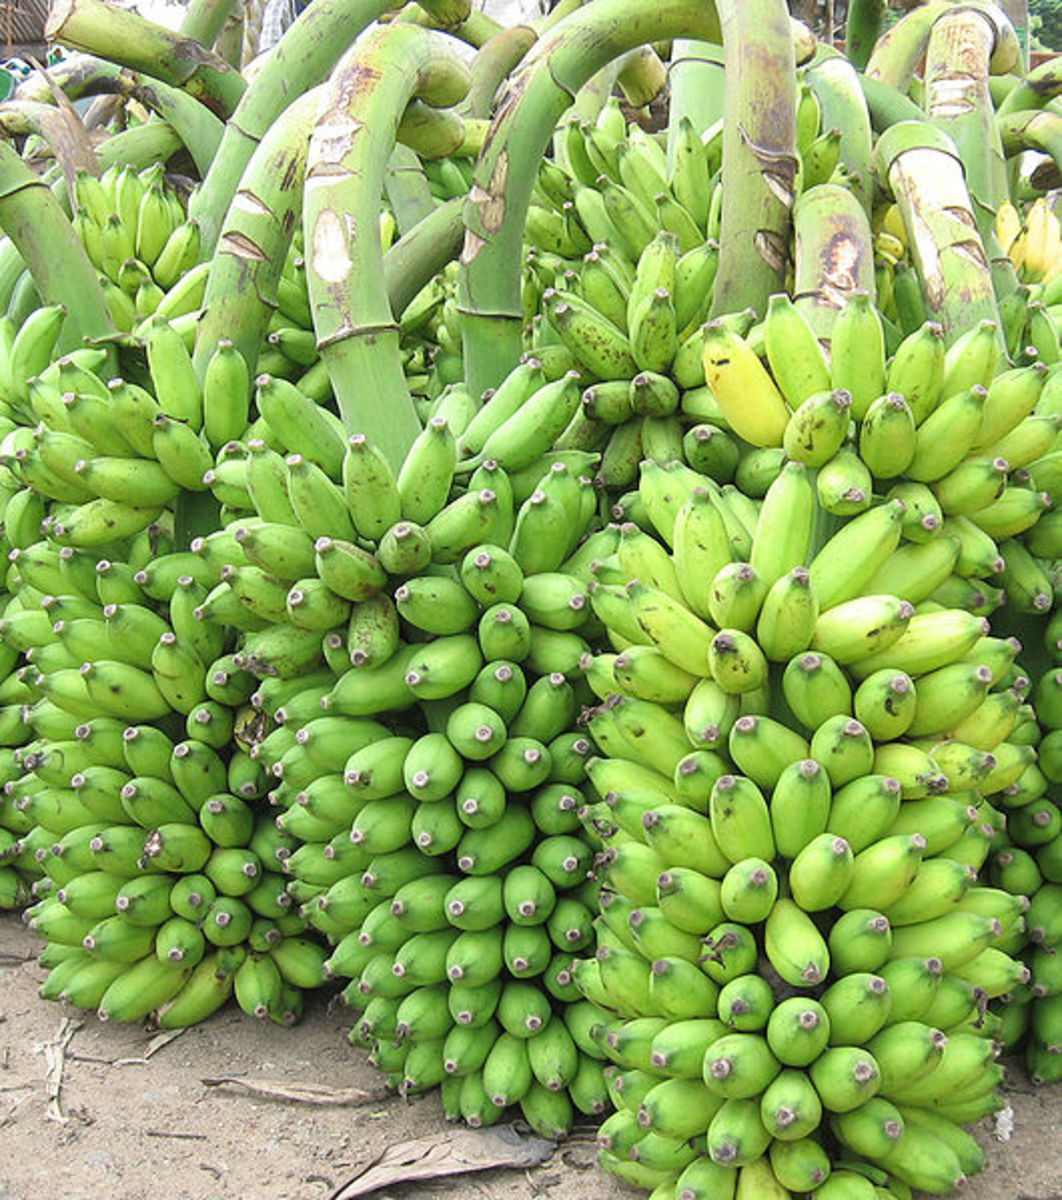 Green bananas, source: Wikipedia